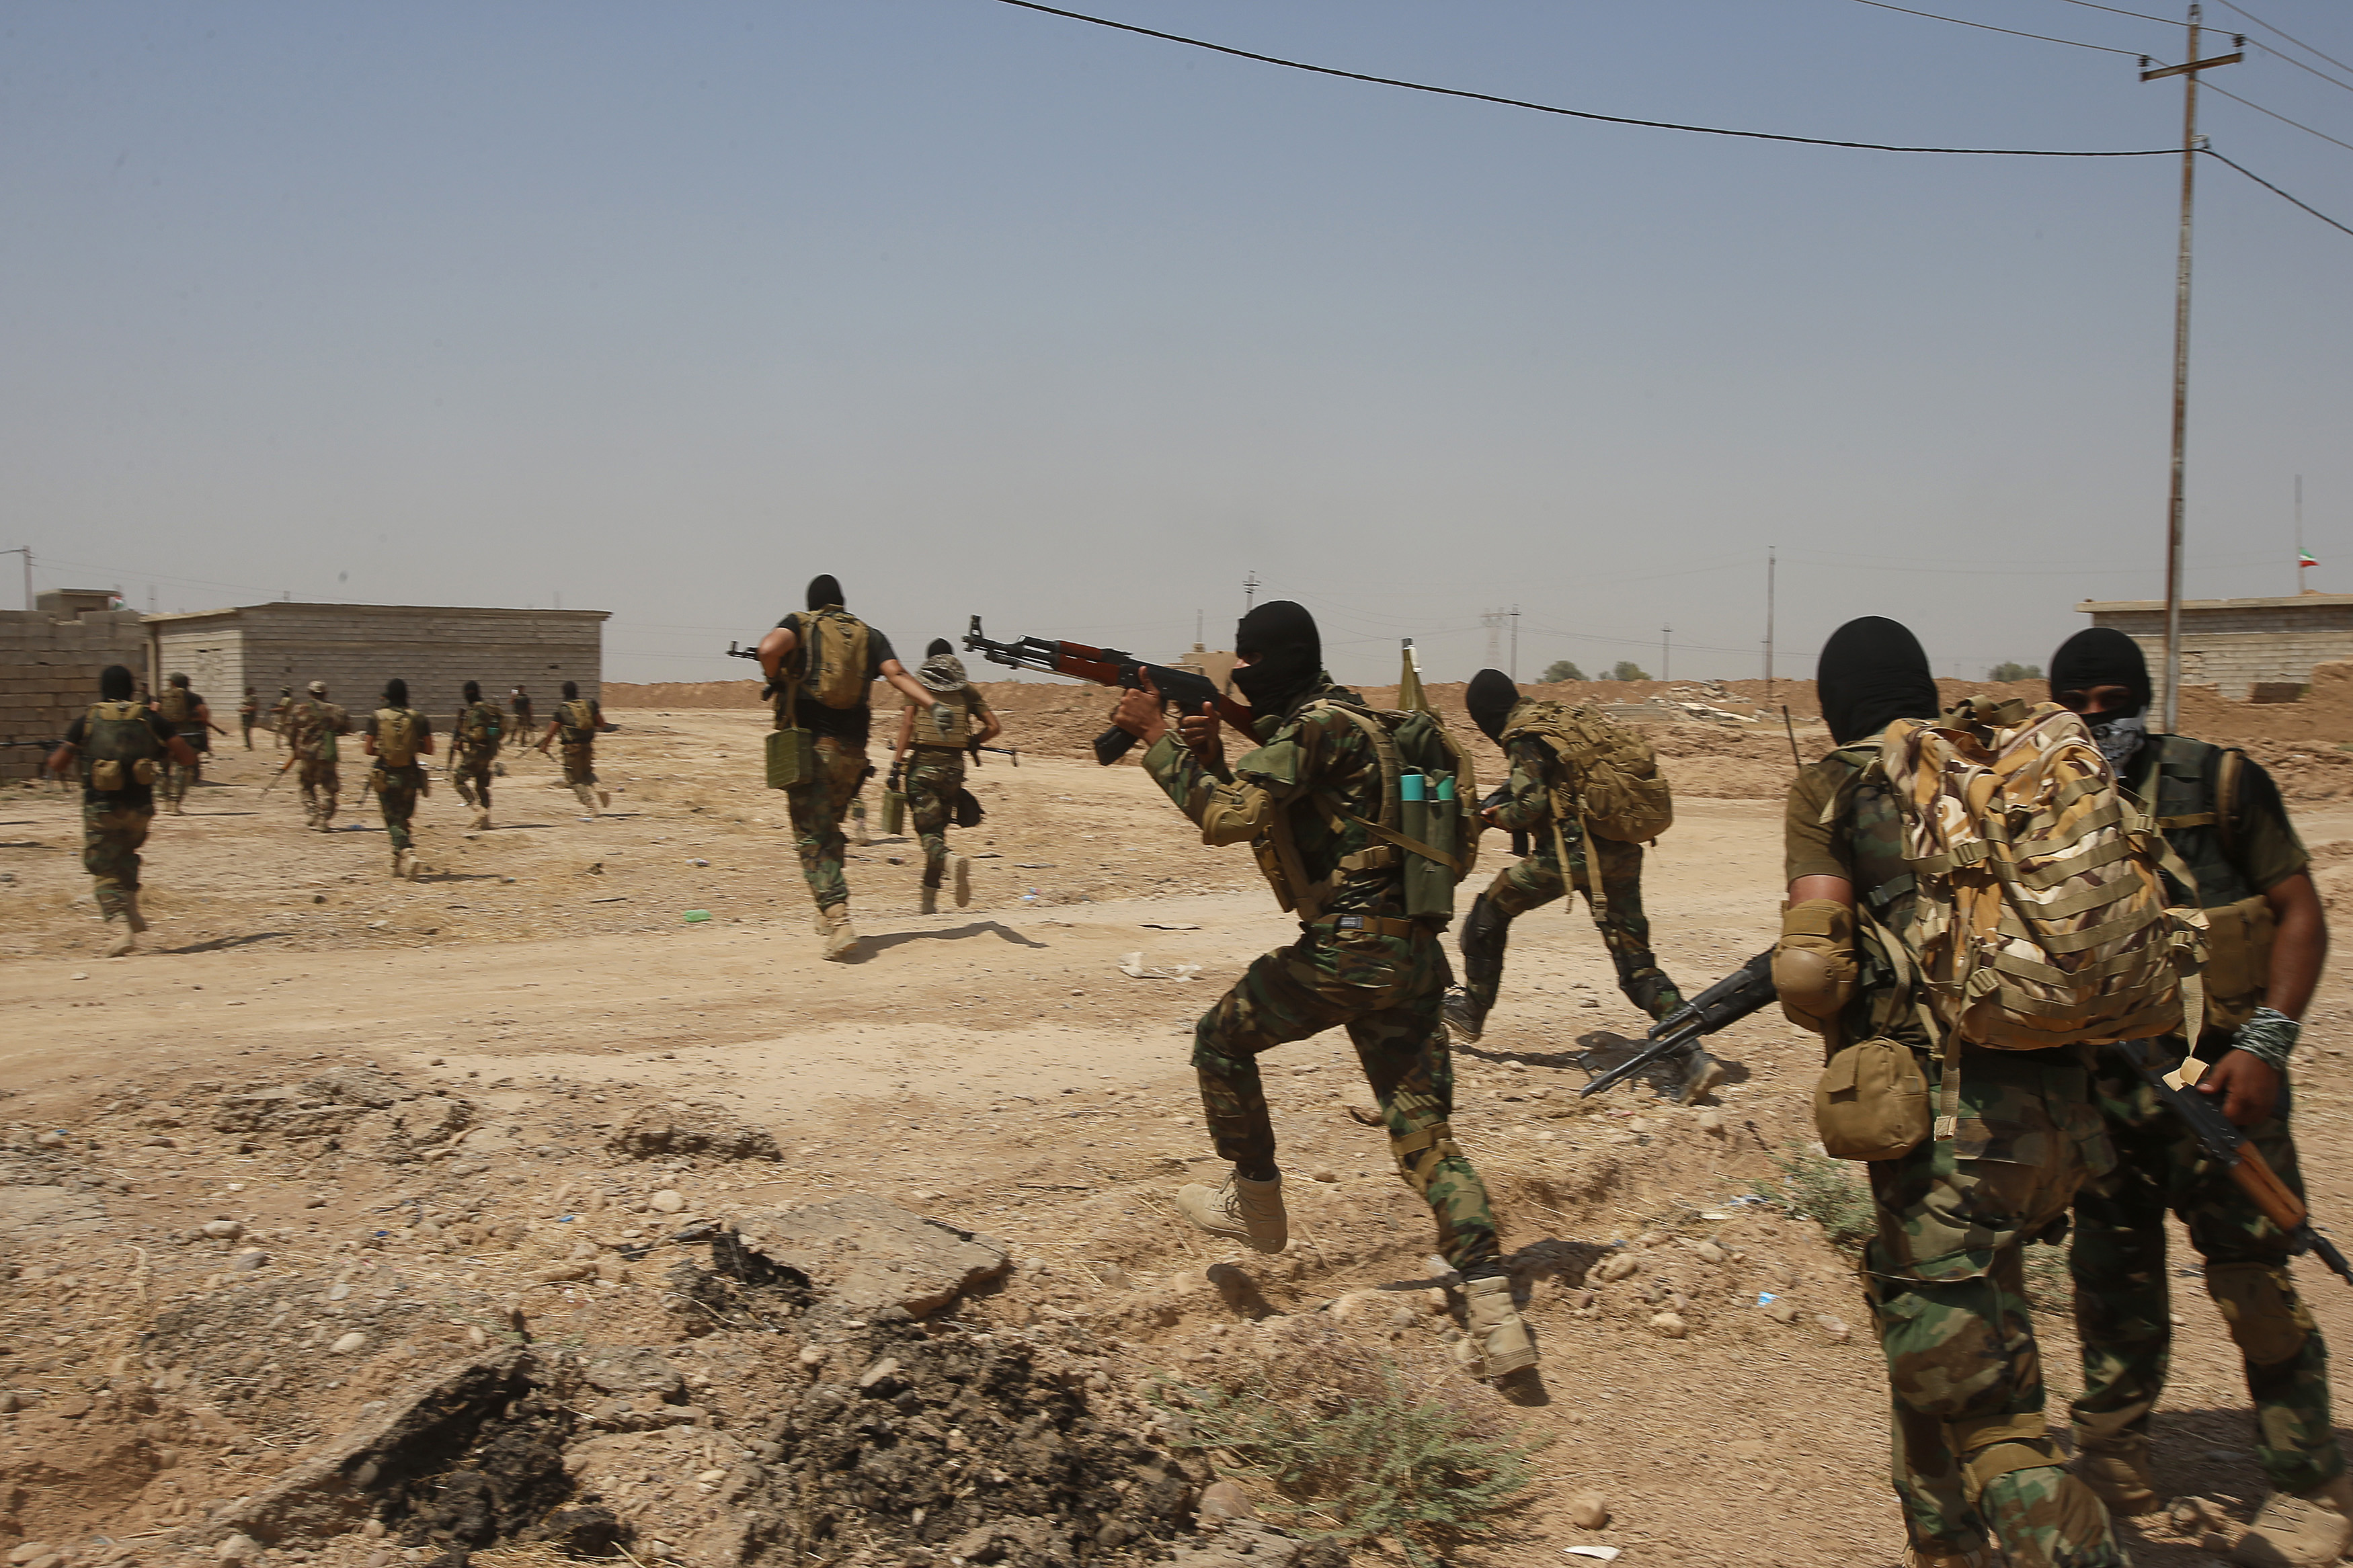 Asaib Ahl al-Haq Shi'ite militia fighters from the south of Iraq run during a mission to take control of Sulaiman Pek village from Islamist State militants, in the northwest of Tikrit city, Sept. 1, 2014.